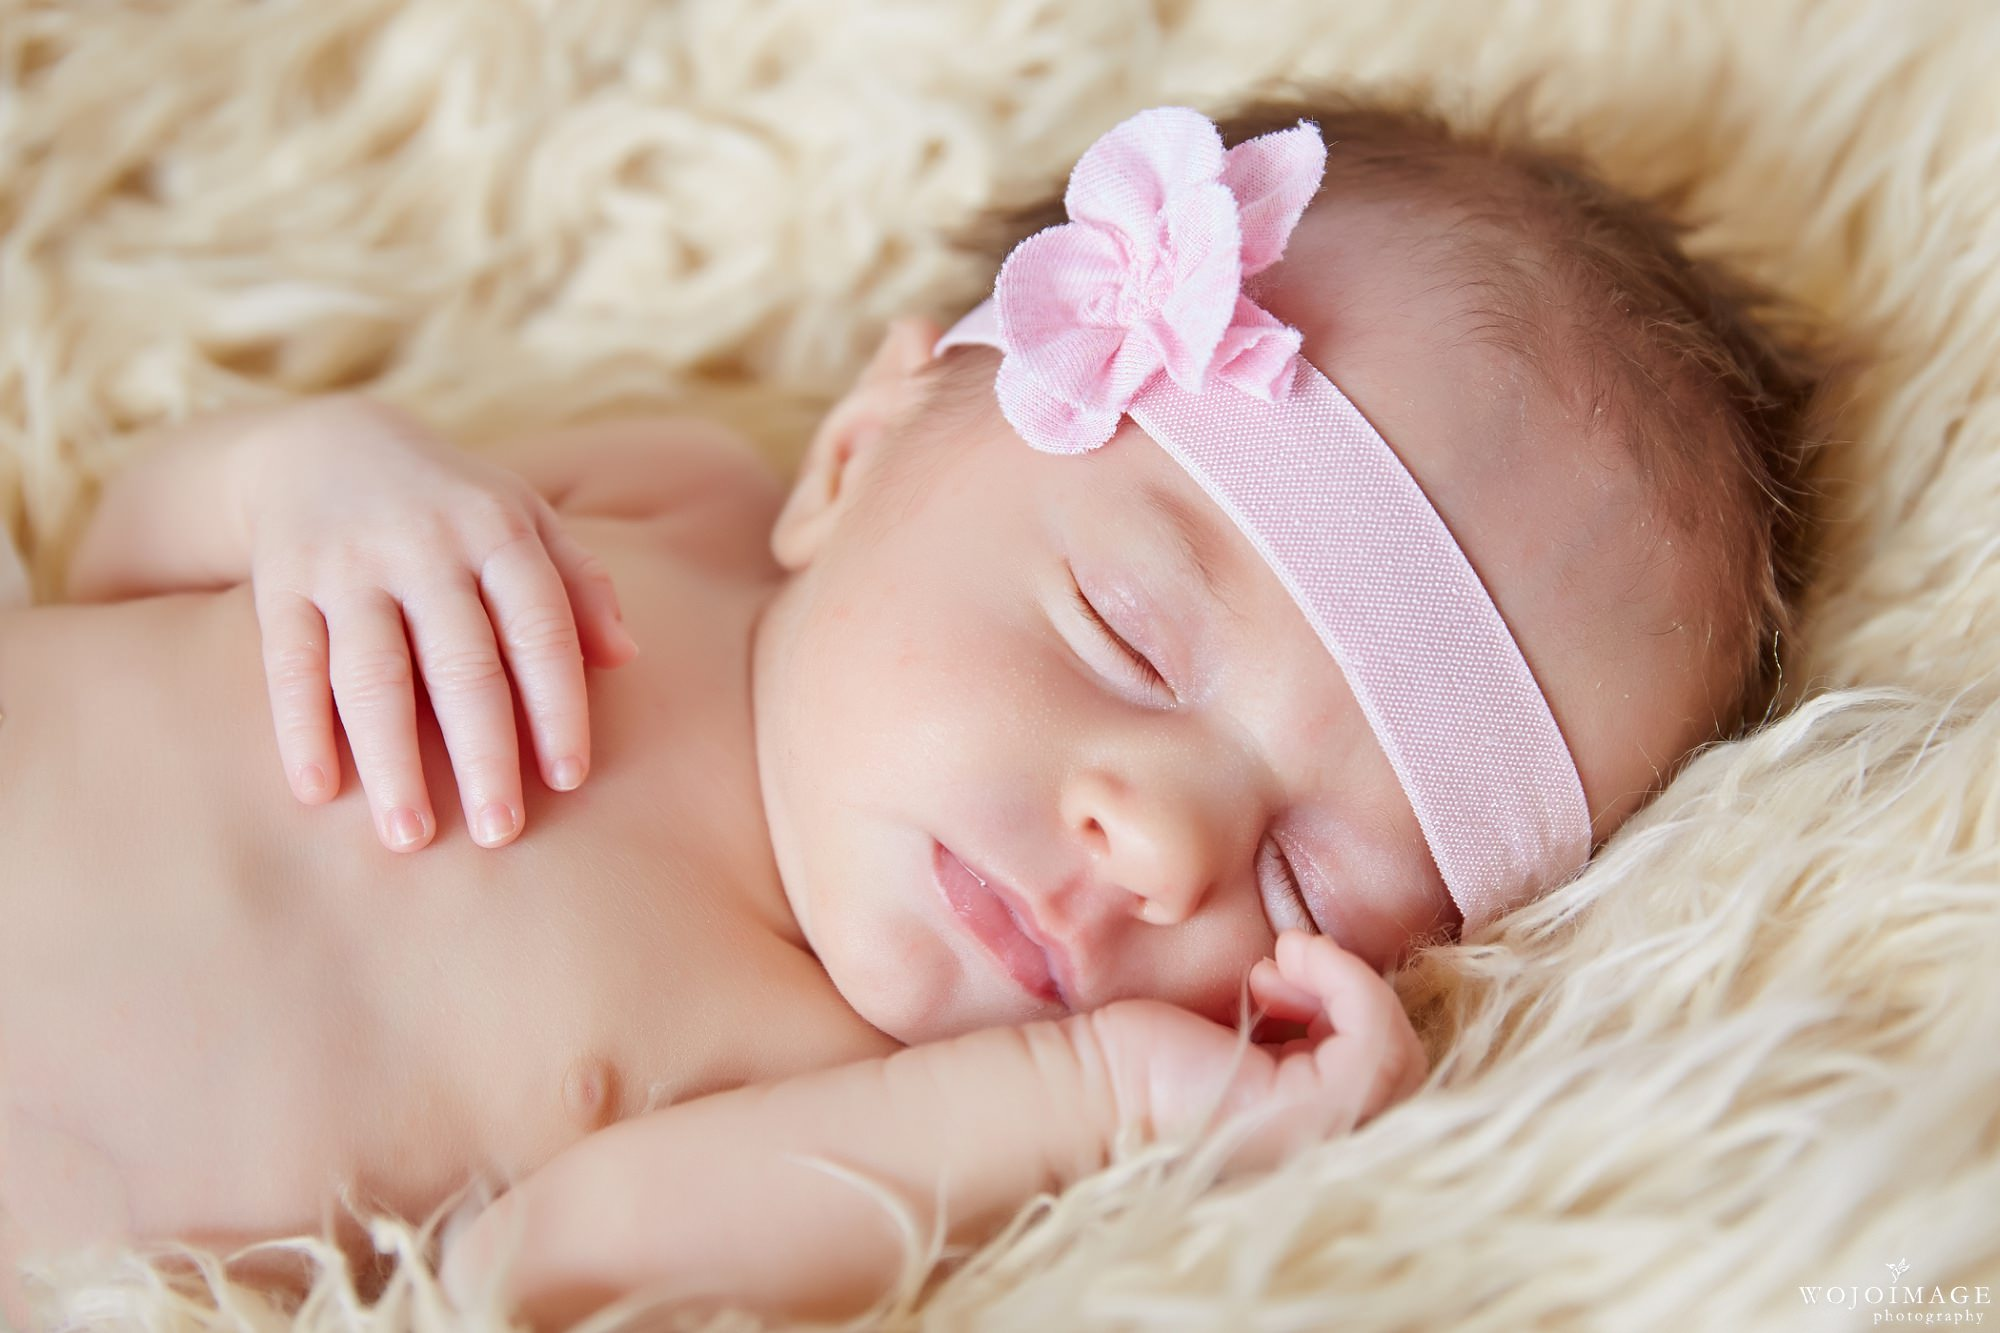 Natural Newborn Baby Lifestyle Pose on a Furry Blanket